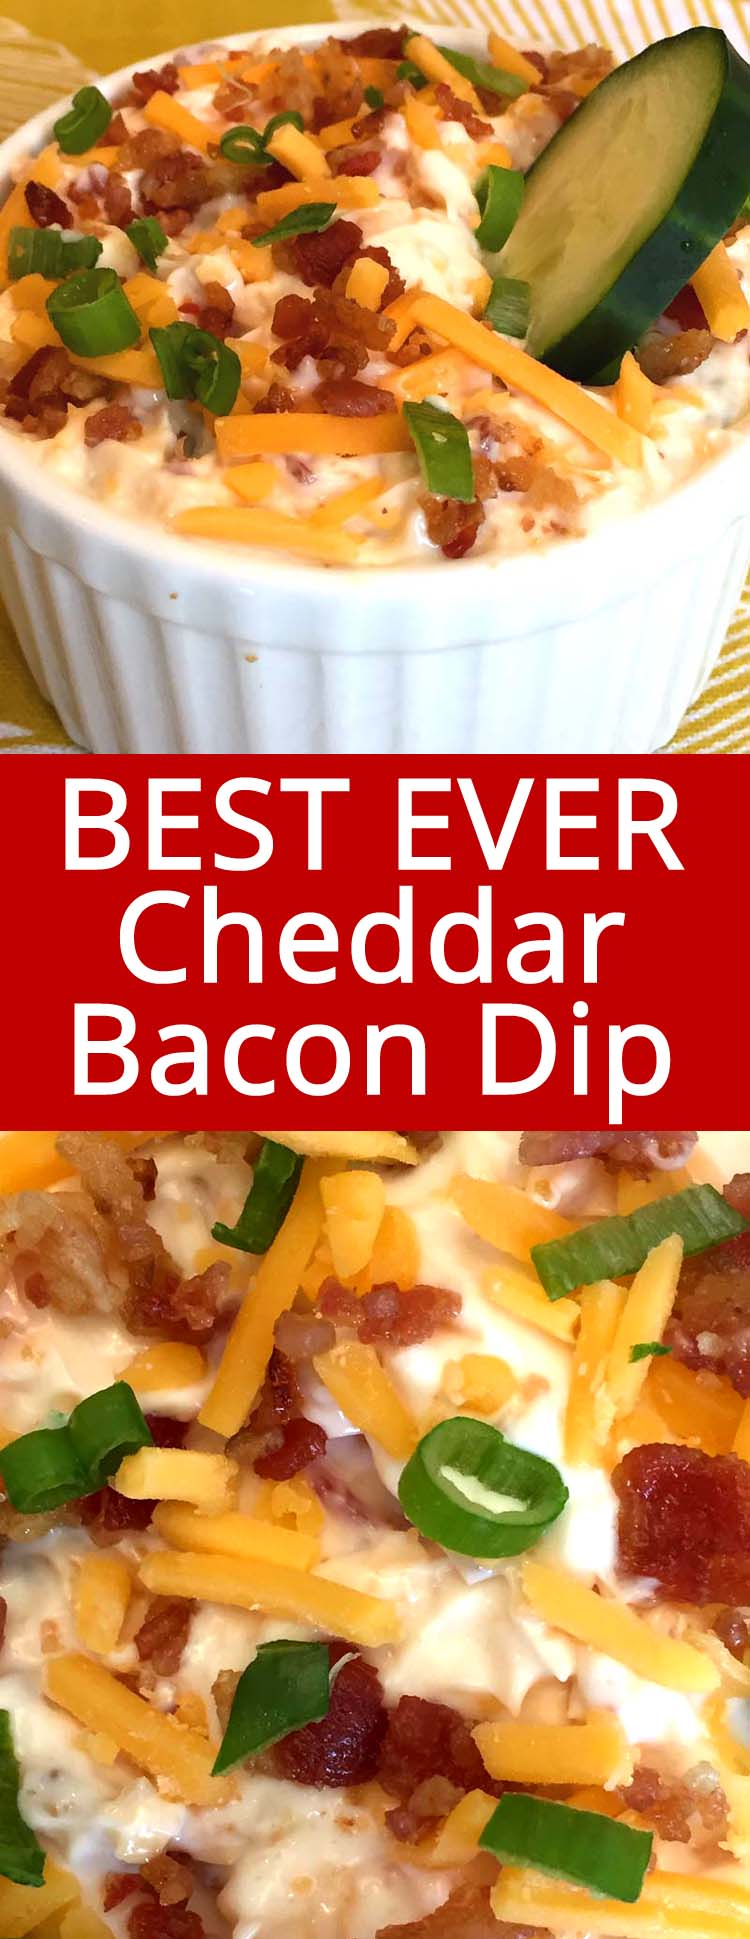 This bacon cheddar dip is amazing! Perfect appetizer for a keto diet! Awesome flavor without the carbs! Everyone loves this bacon cheddar dip!